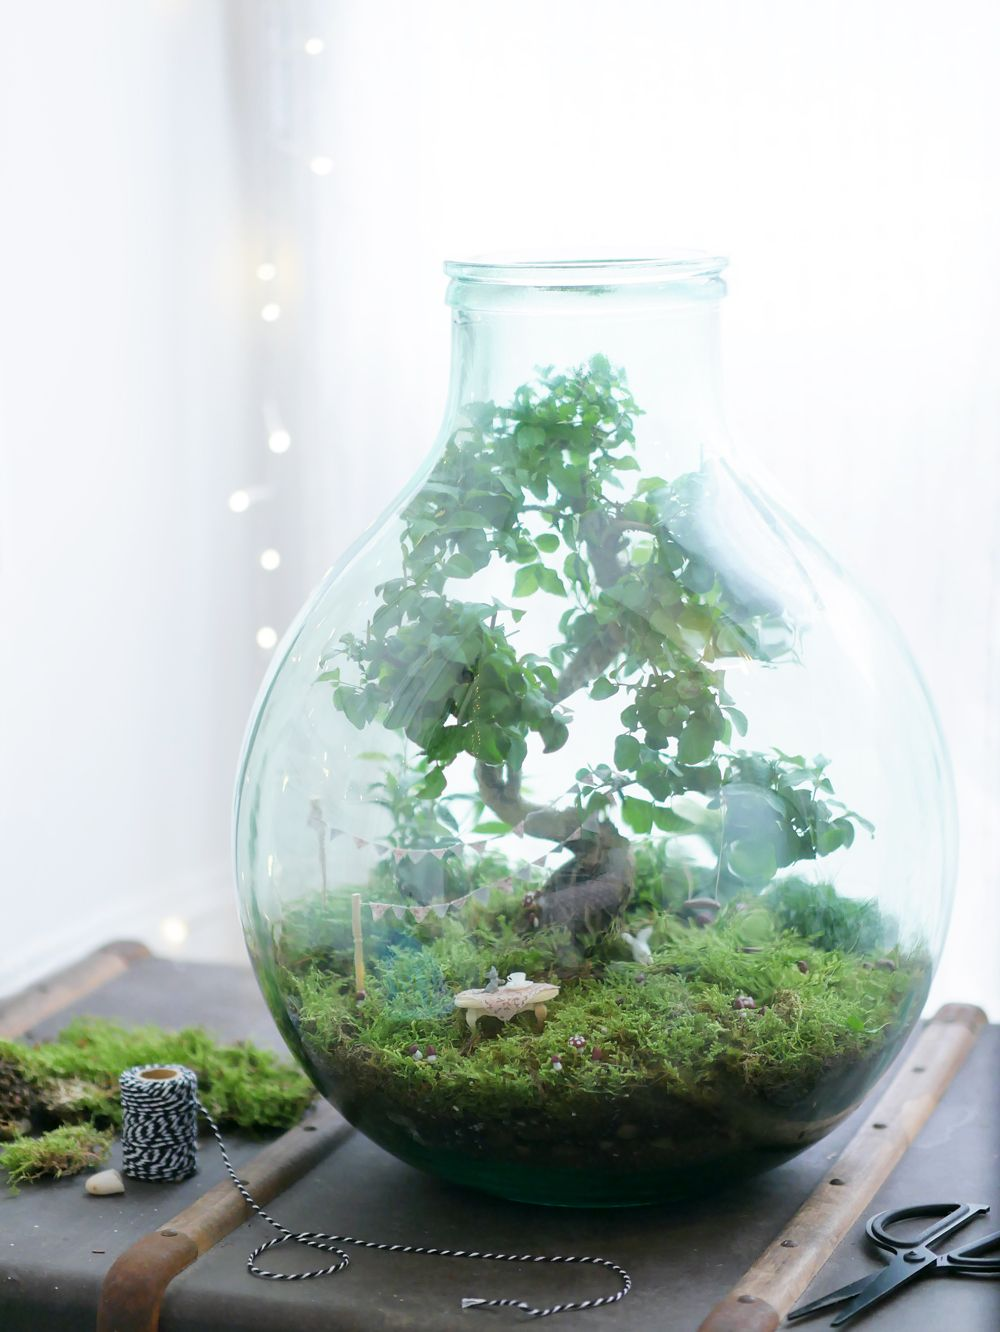 dont mess with the rabbit terrarium mini jardin de fee truffaut 1 h easter pinterest. Black Bedroom Furniture Sets. Home Design Ideas